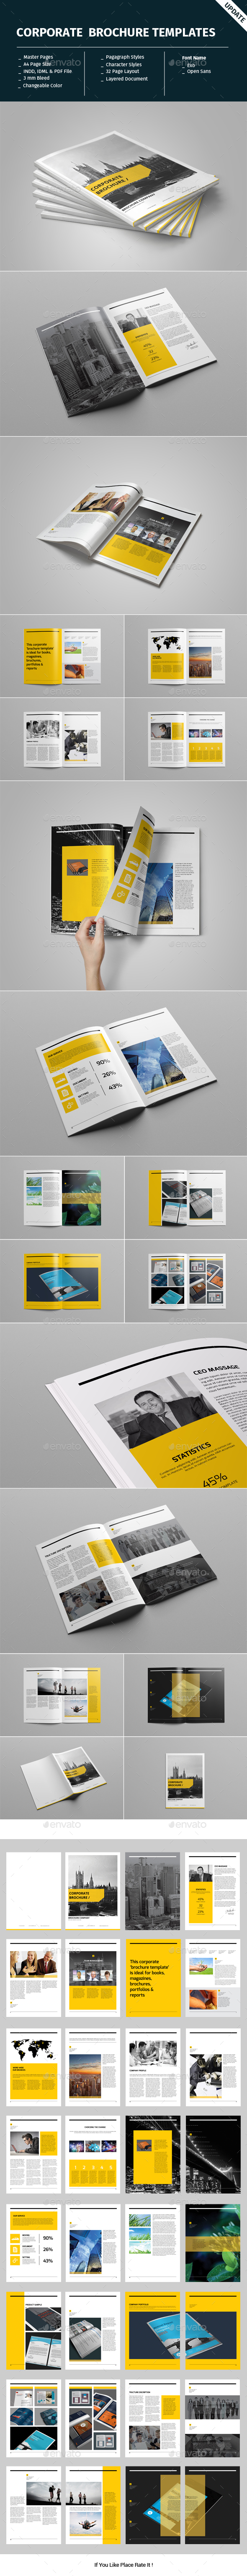 Corporate Brochure Template - Informational Brochures